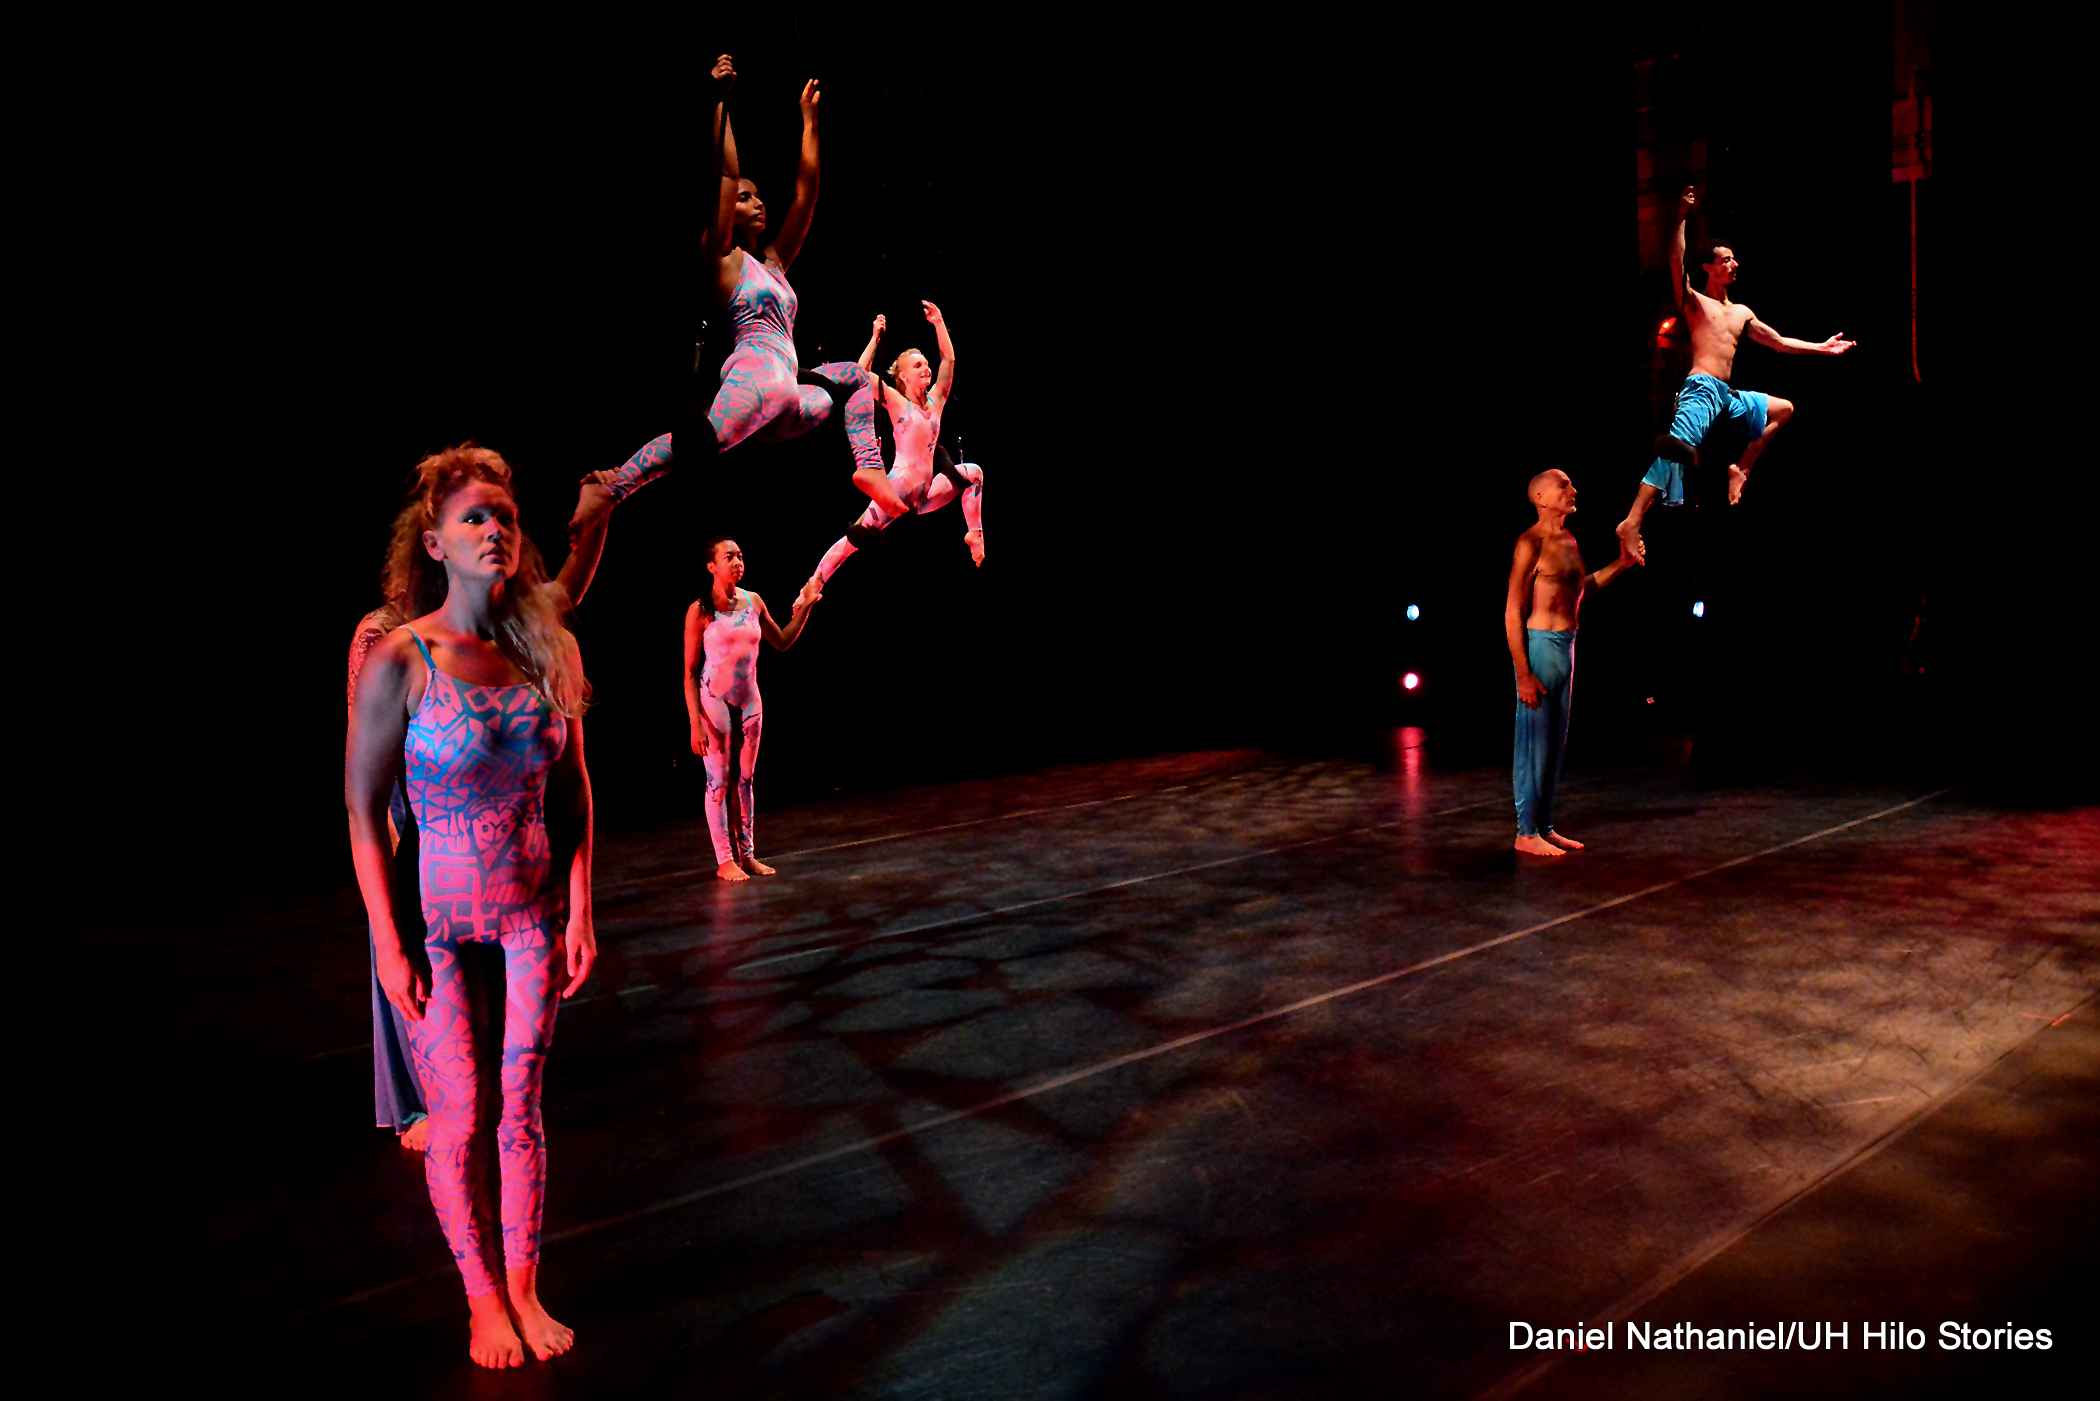 PHOTOS: Sneak peek! Great Leaps dress rehearsal; UH Hilo students to perform Dec. 4-5